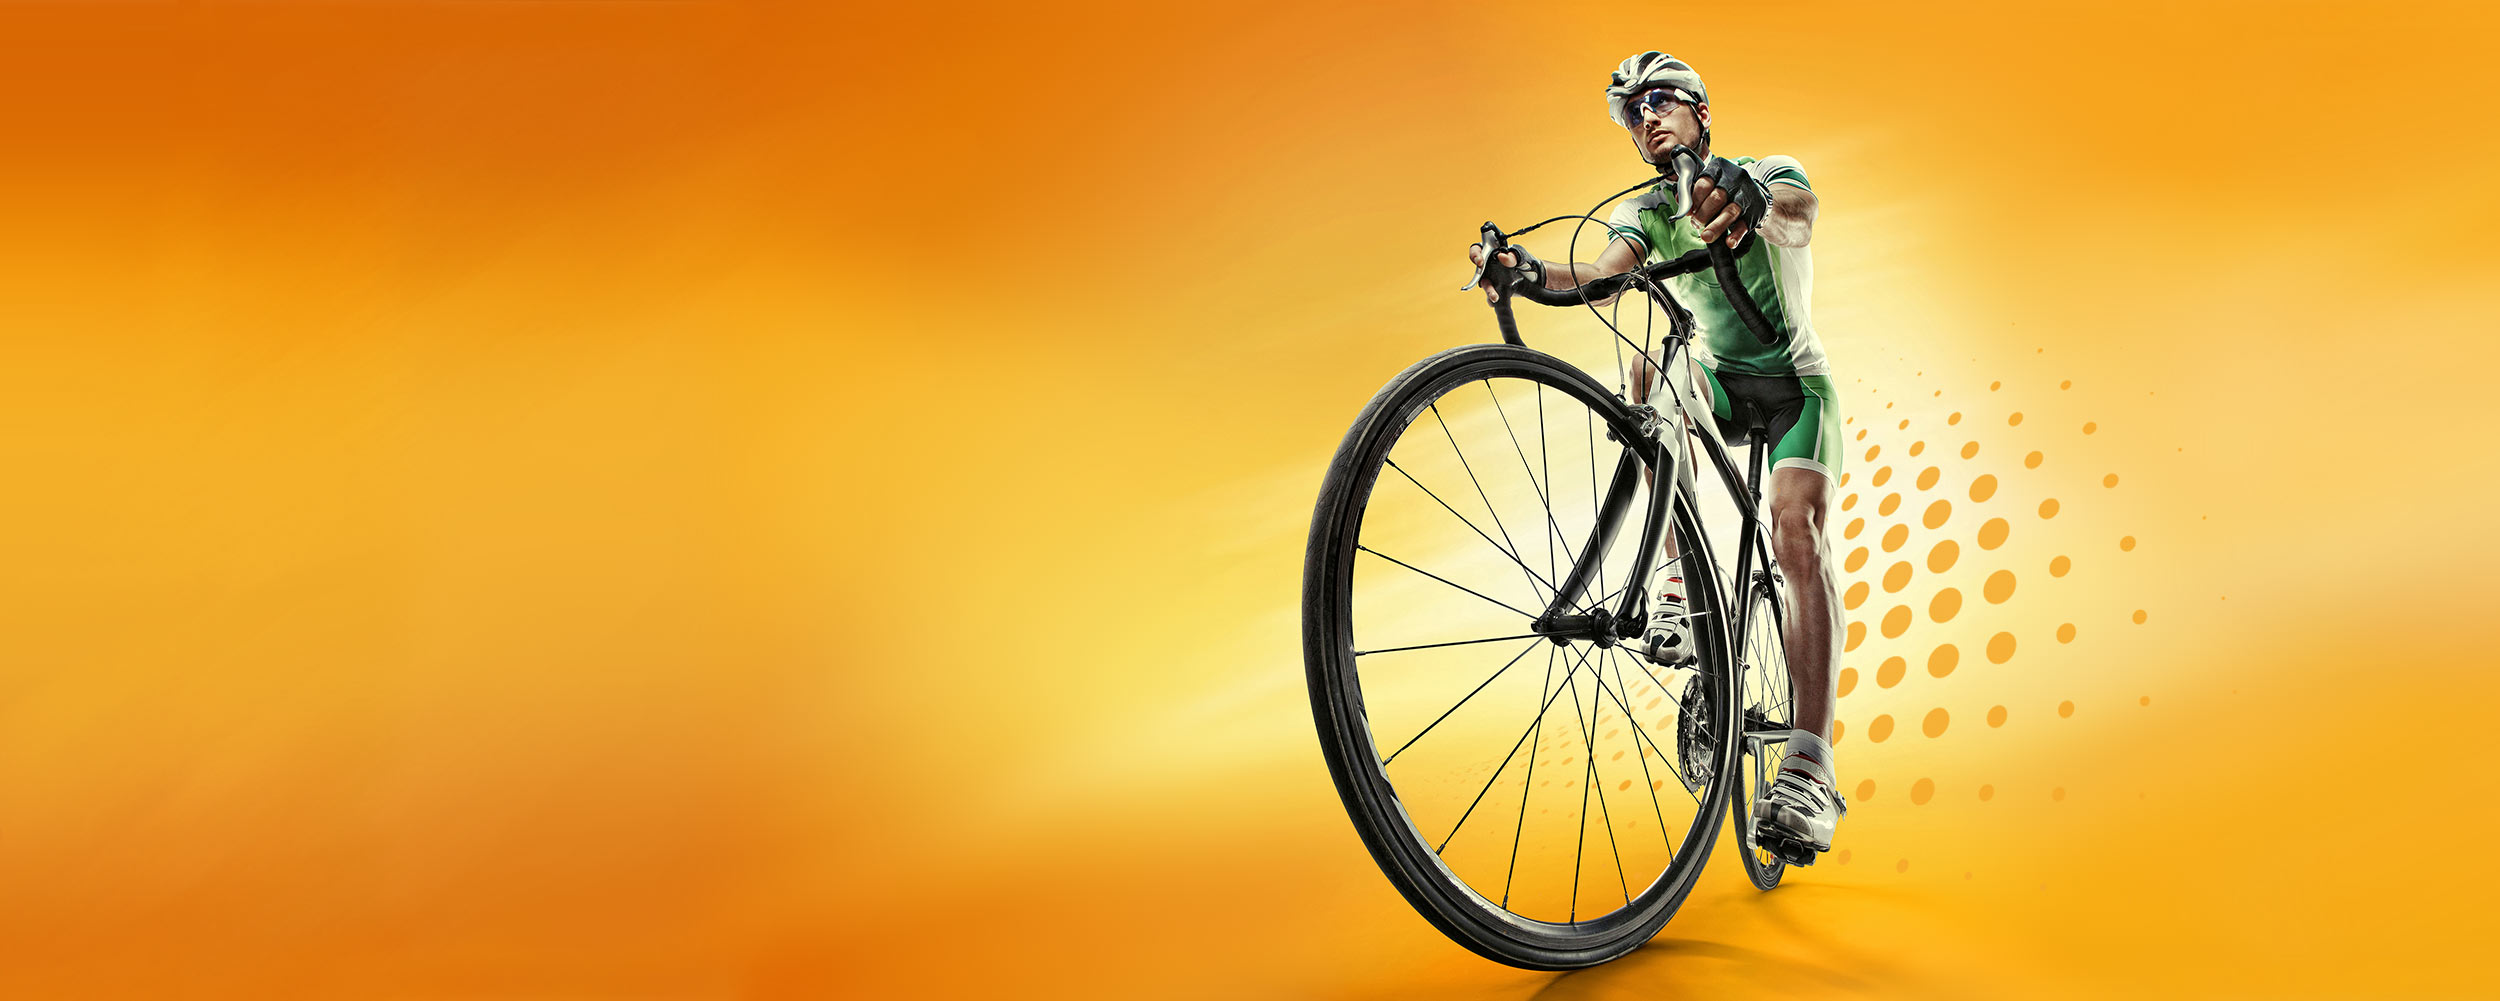 Cyclist Graphic